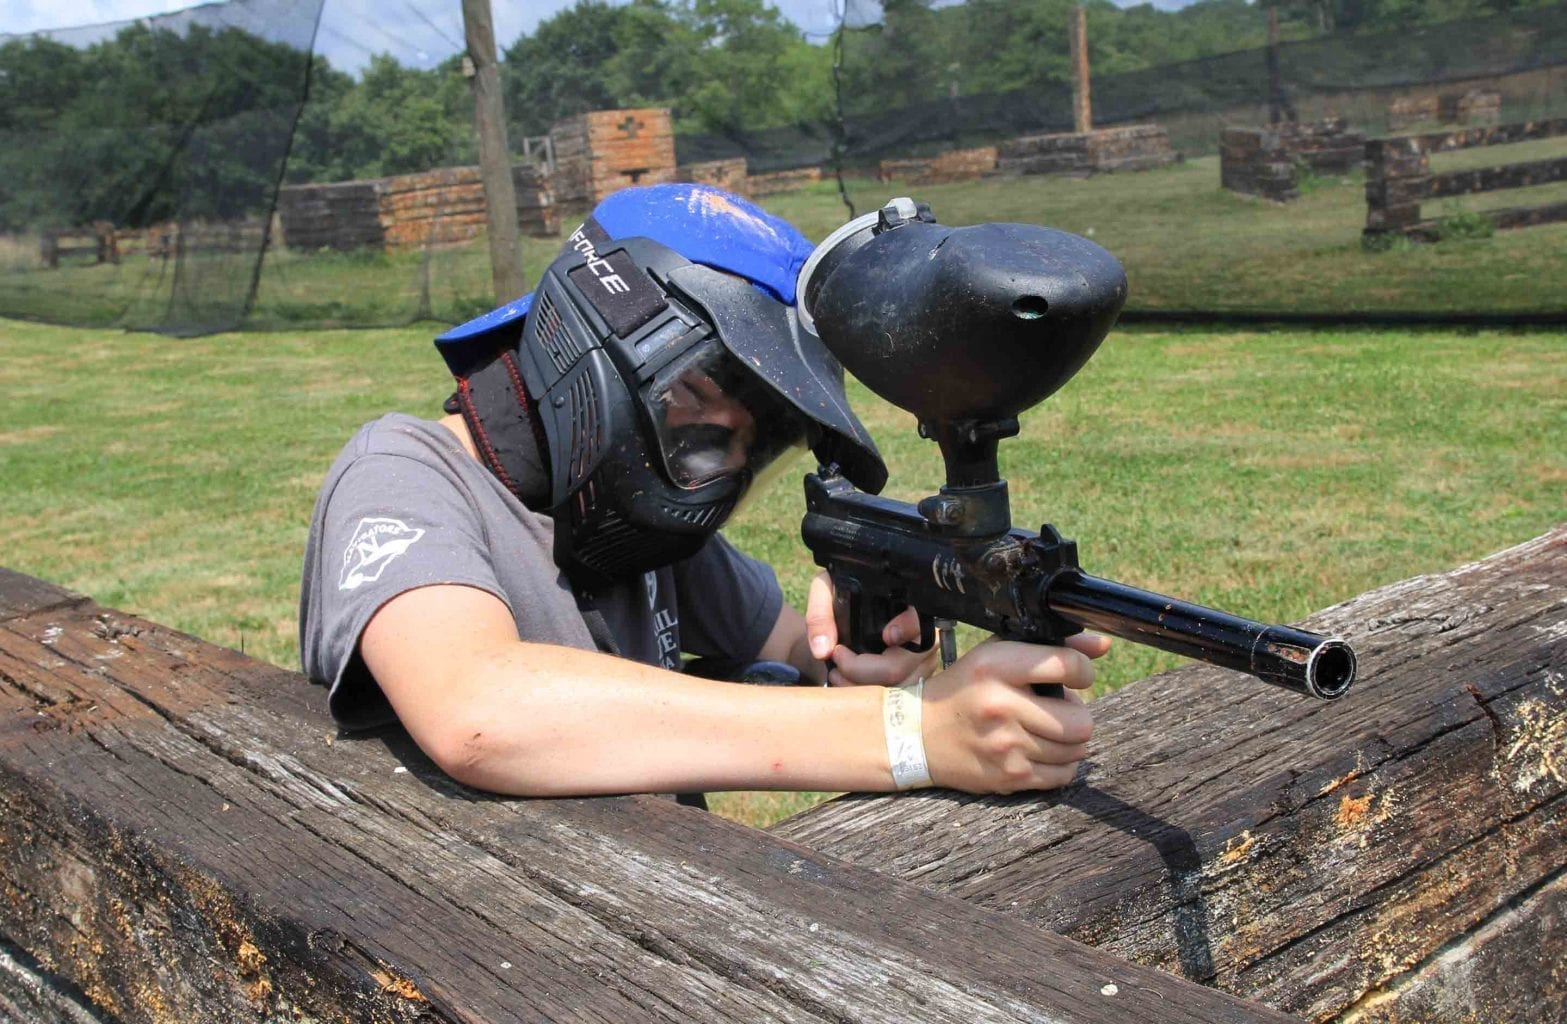 An older kid plays paintball on the walk on paintball course at ACE.